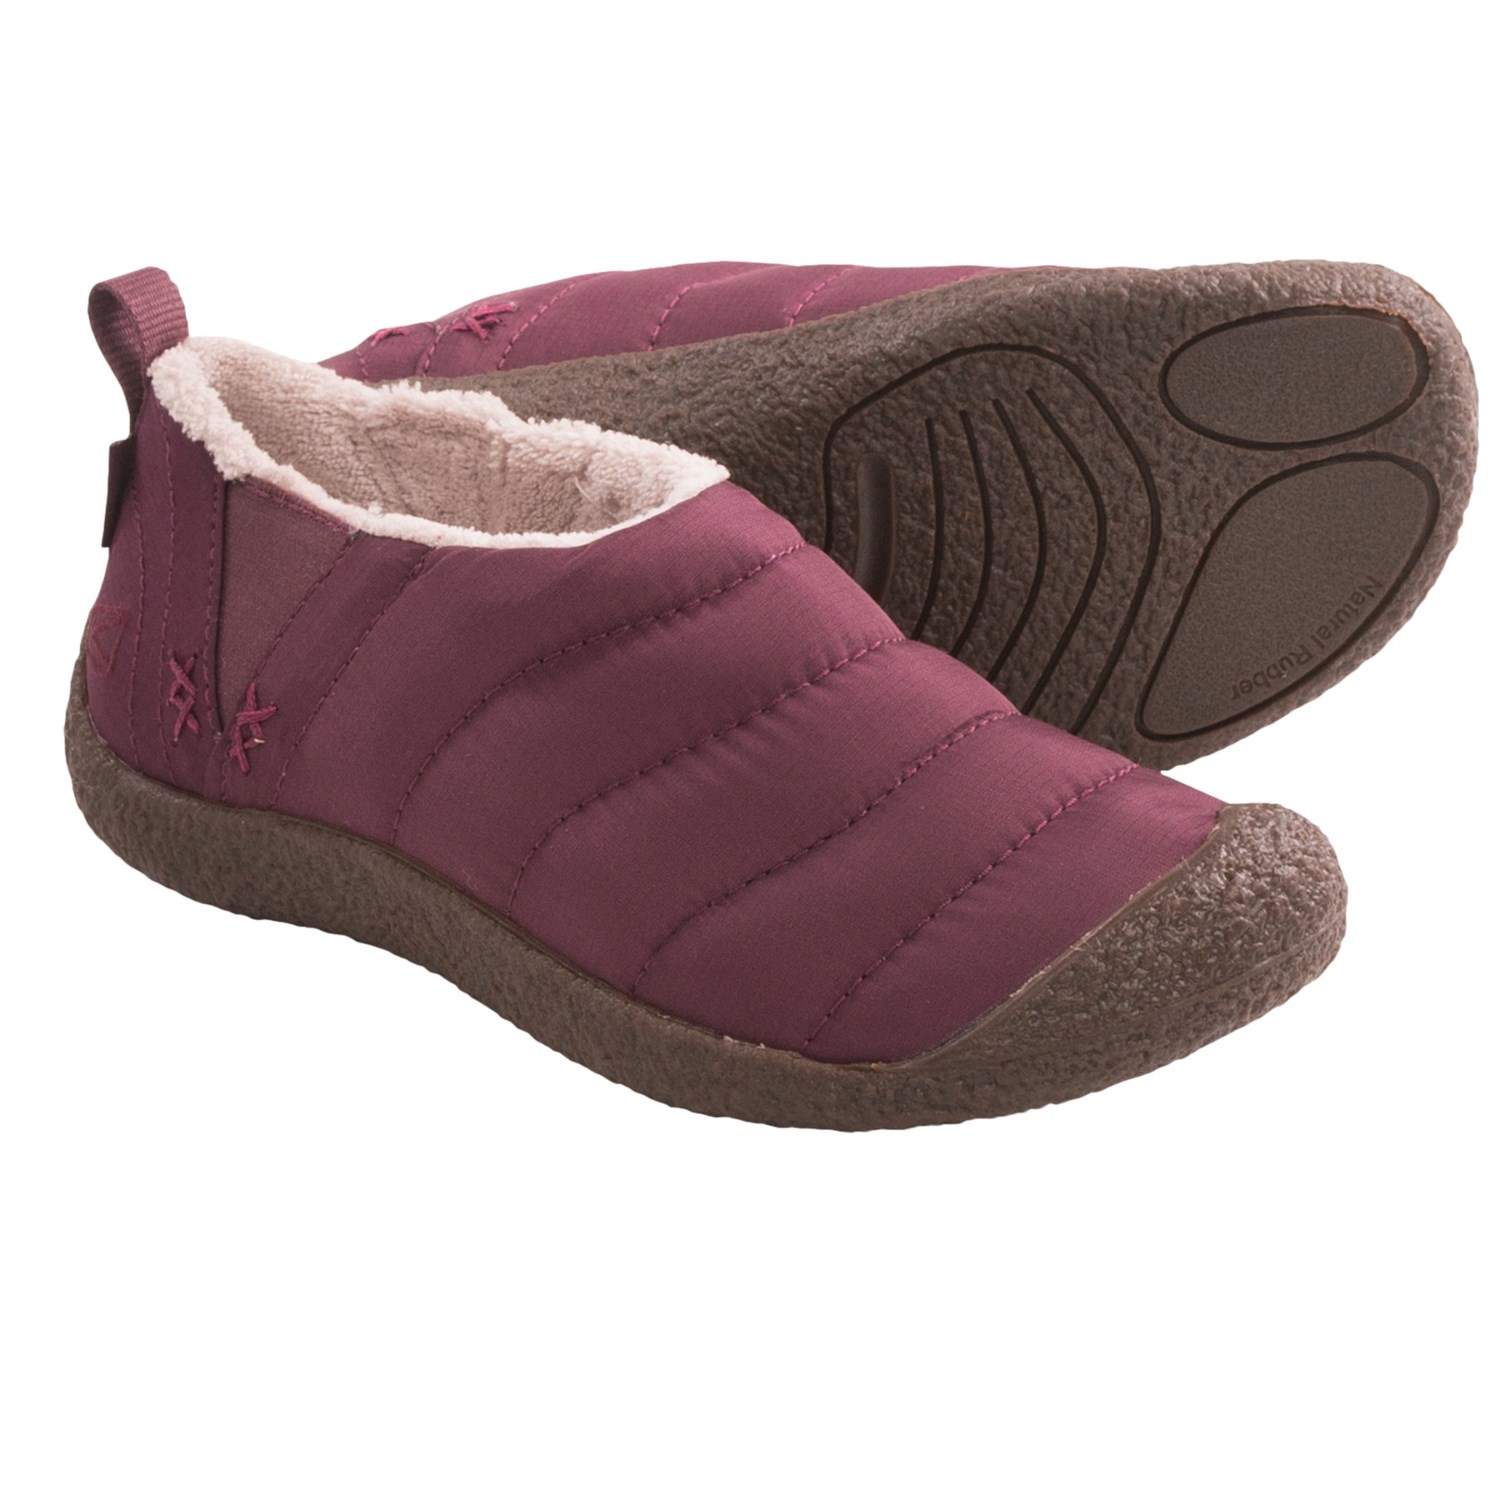 Keen Howser Shoes - Microfleece Lining (For Women) in Tawny Port